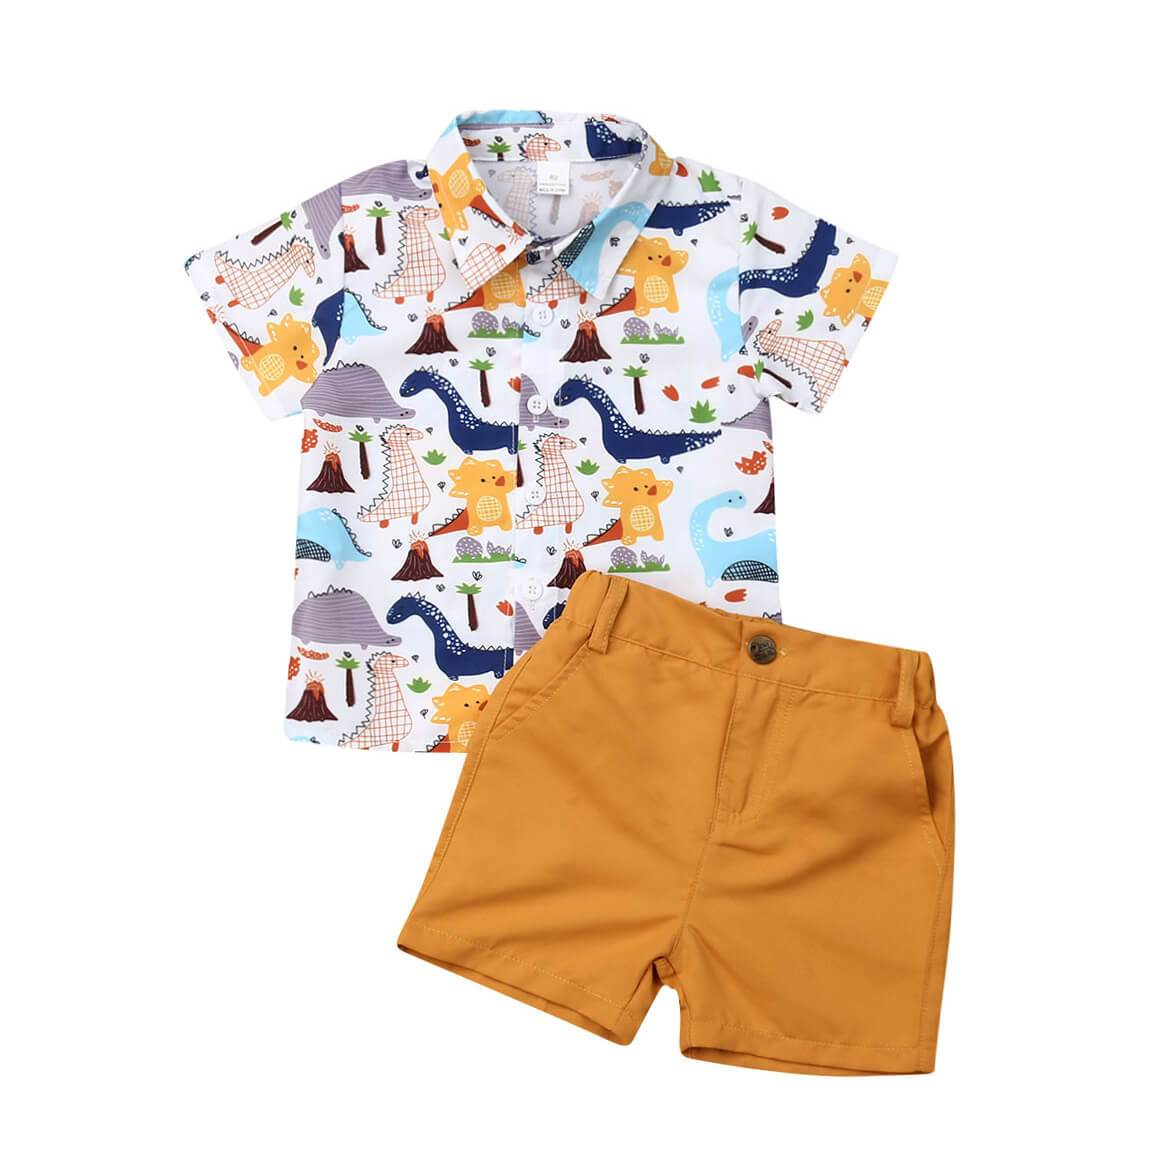 Dinosaurs Shirt Set - The Trendy Toddlers